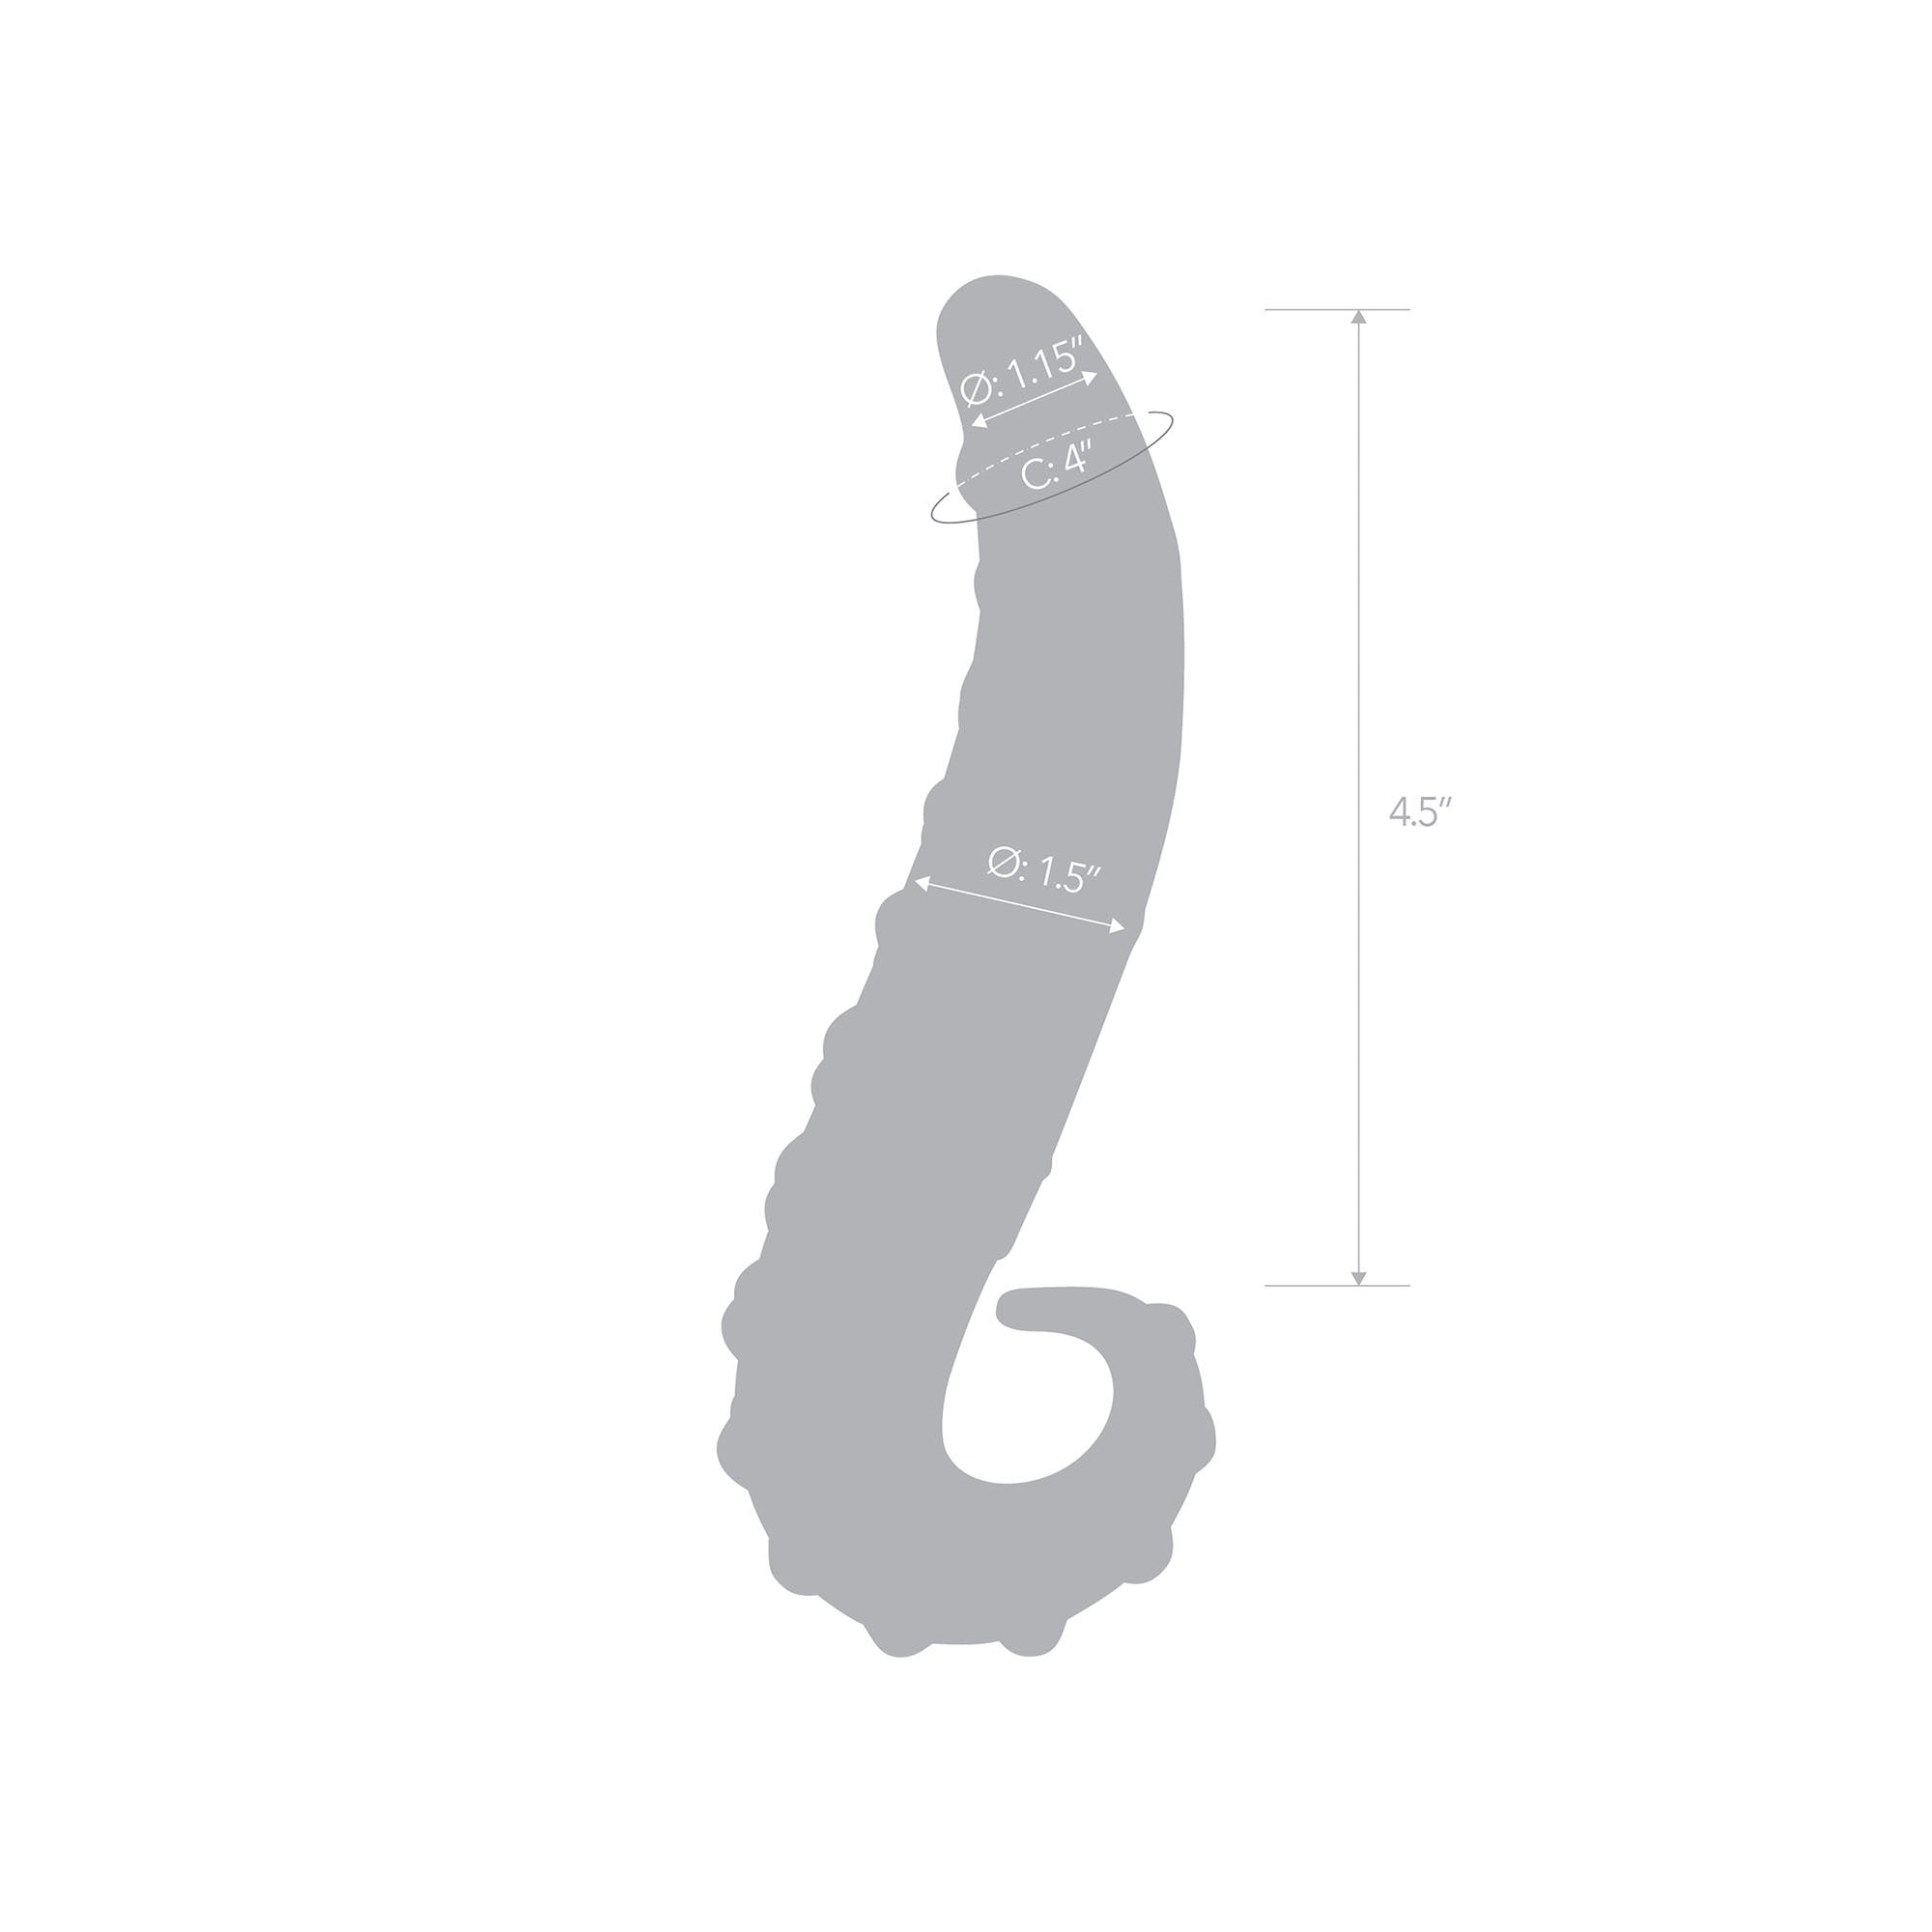 Specifications of the 6 inch Lick-it Glass Dildo